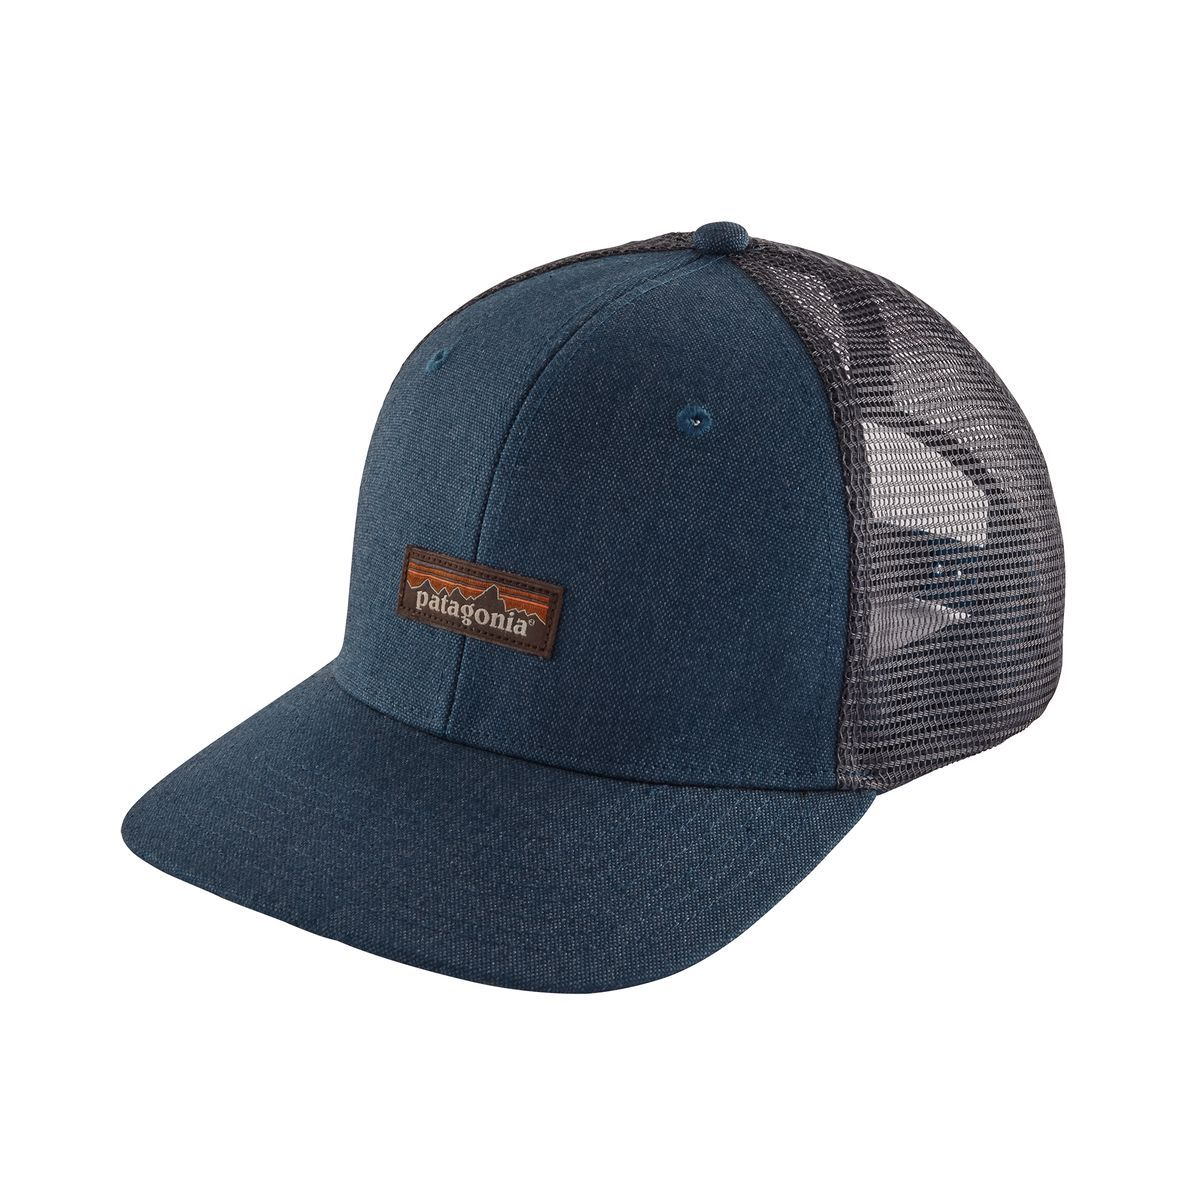 Patagonia Tin Shed Work Hat: Tin Shed, Work Wear Women, Mesh Cap